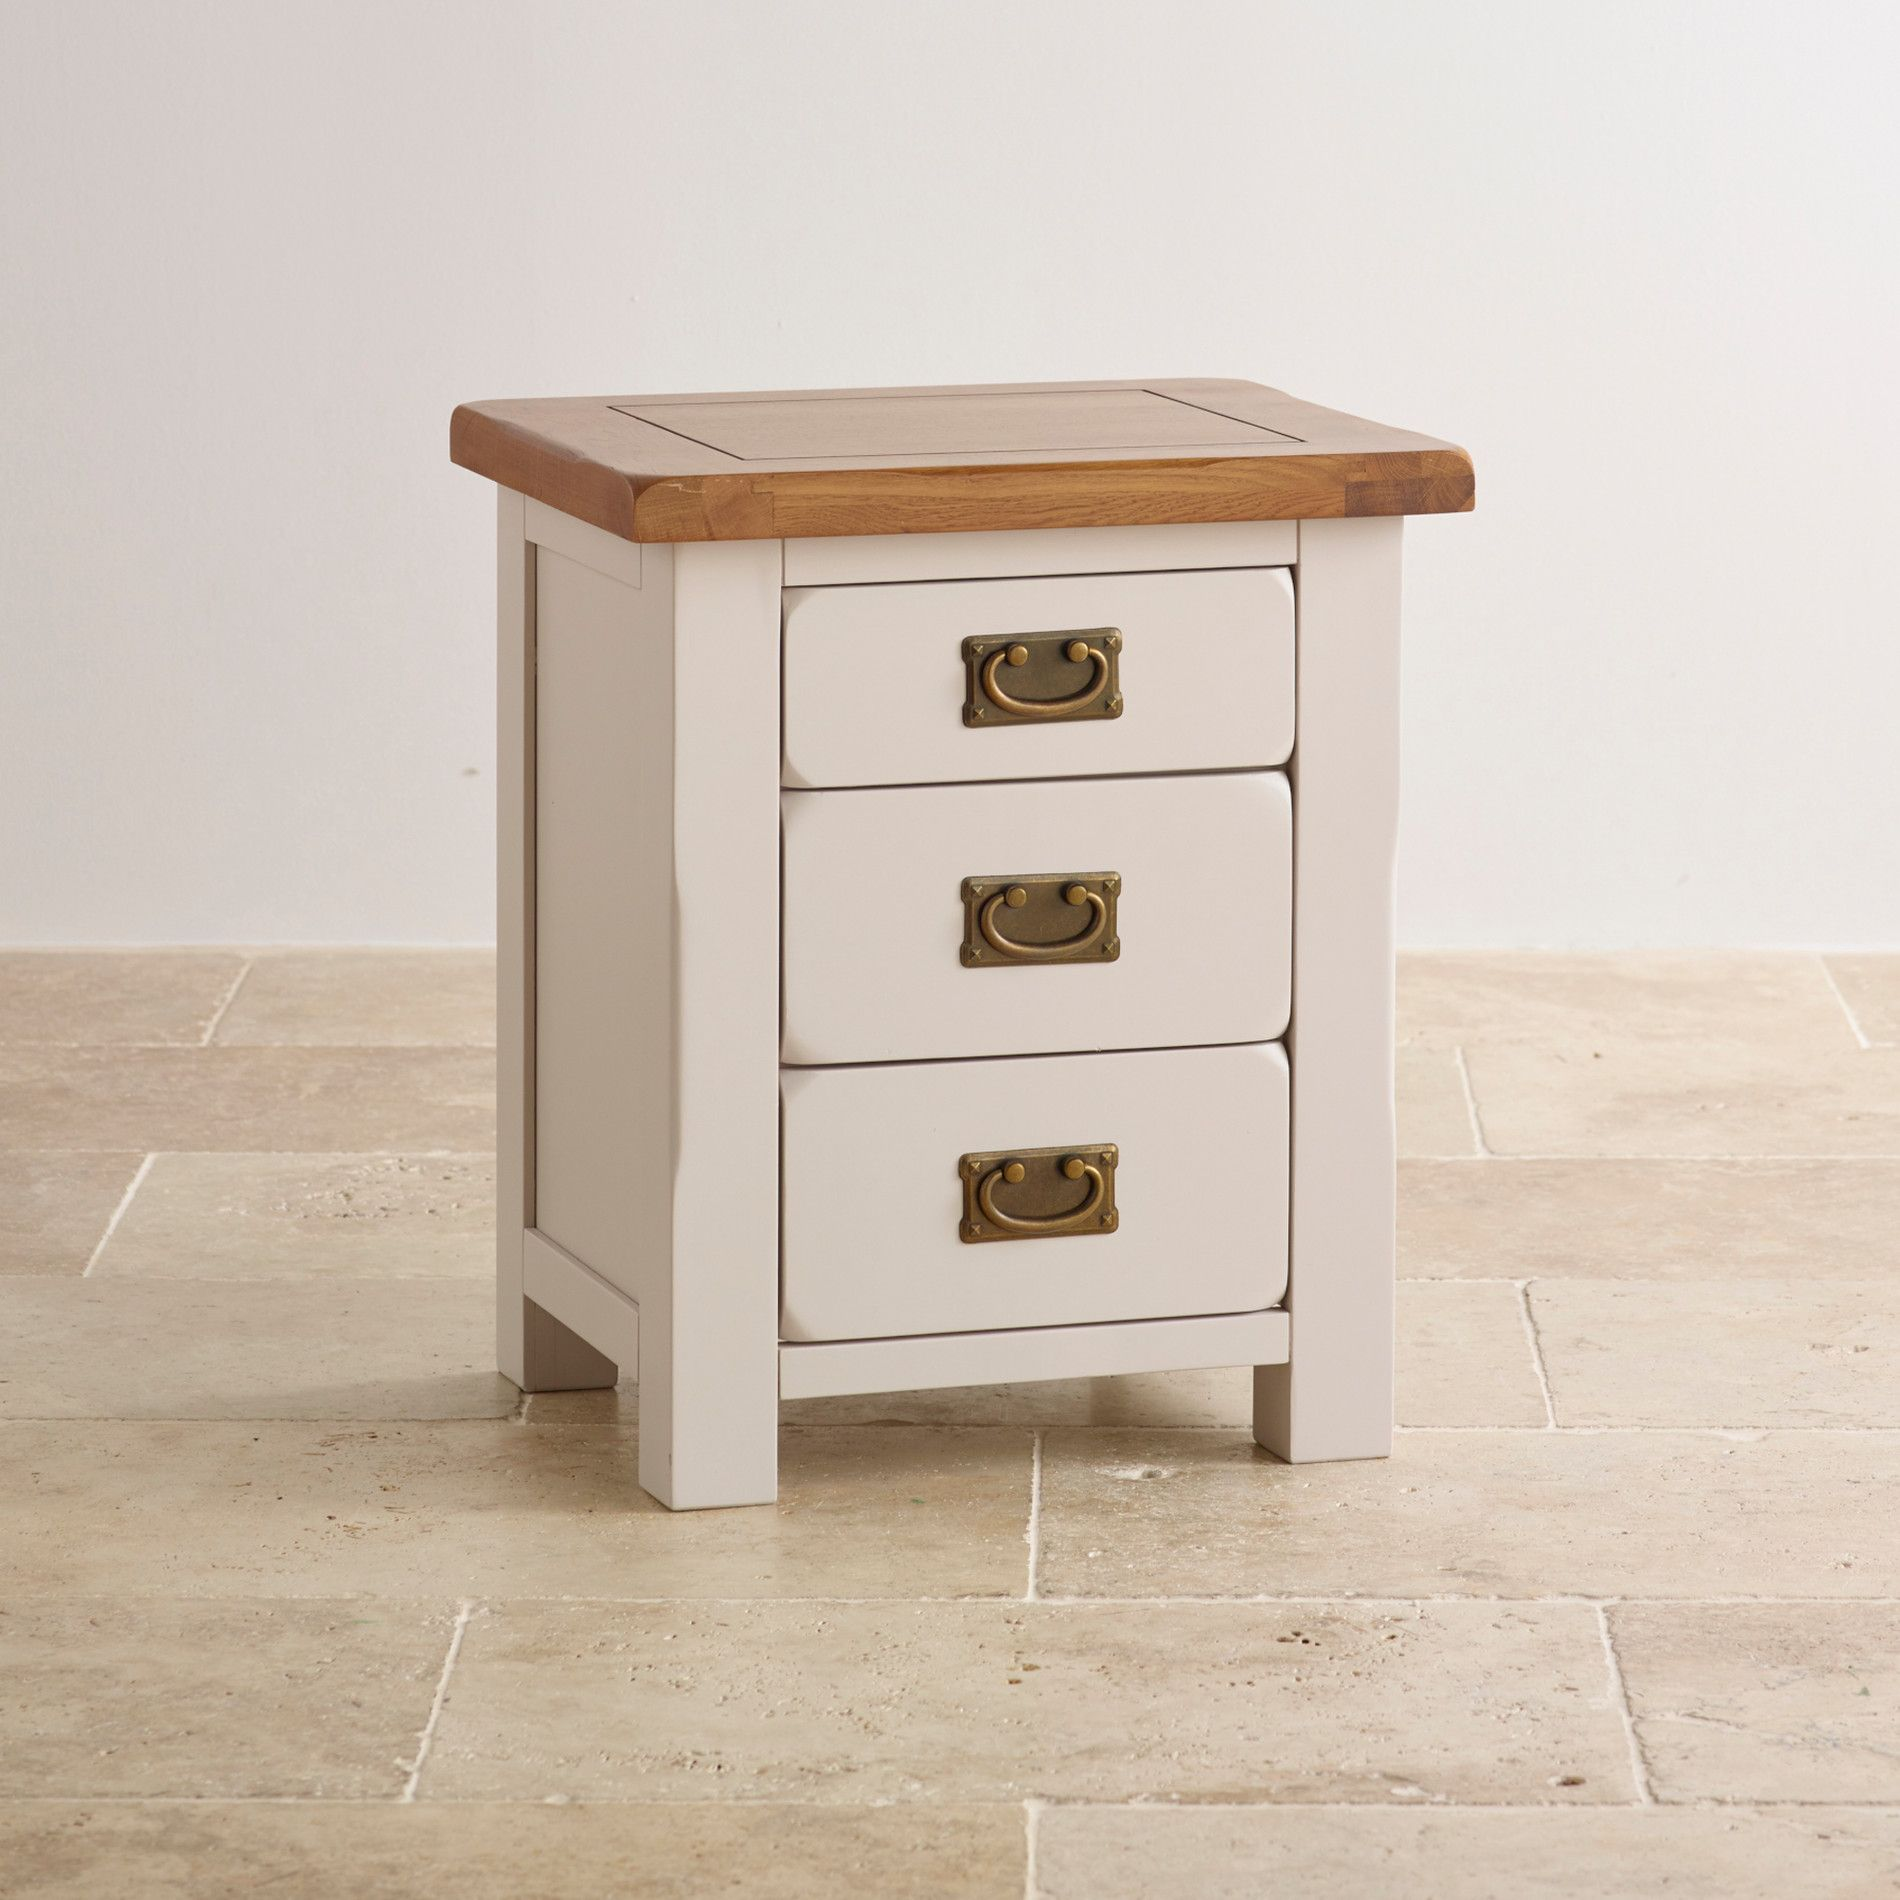 Kemble Rustic Solid Oak And Painted 3 Drawer Bedside Table Barn